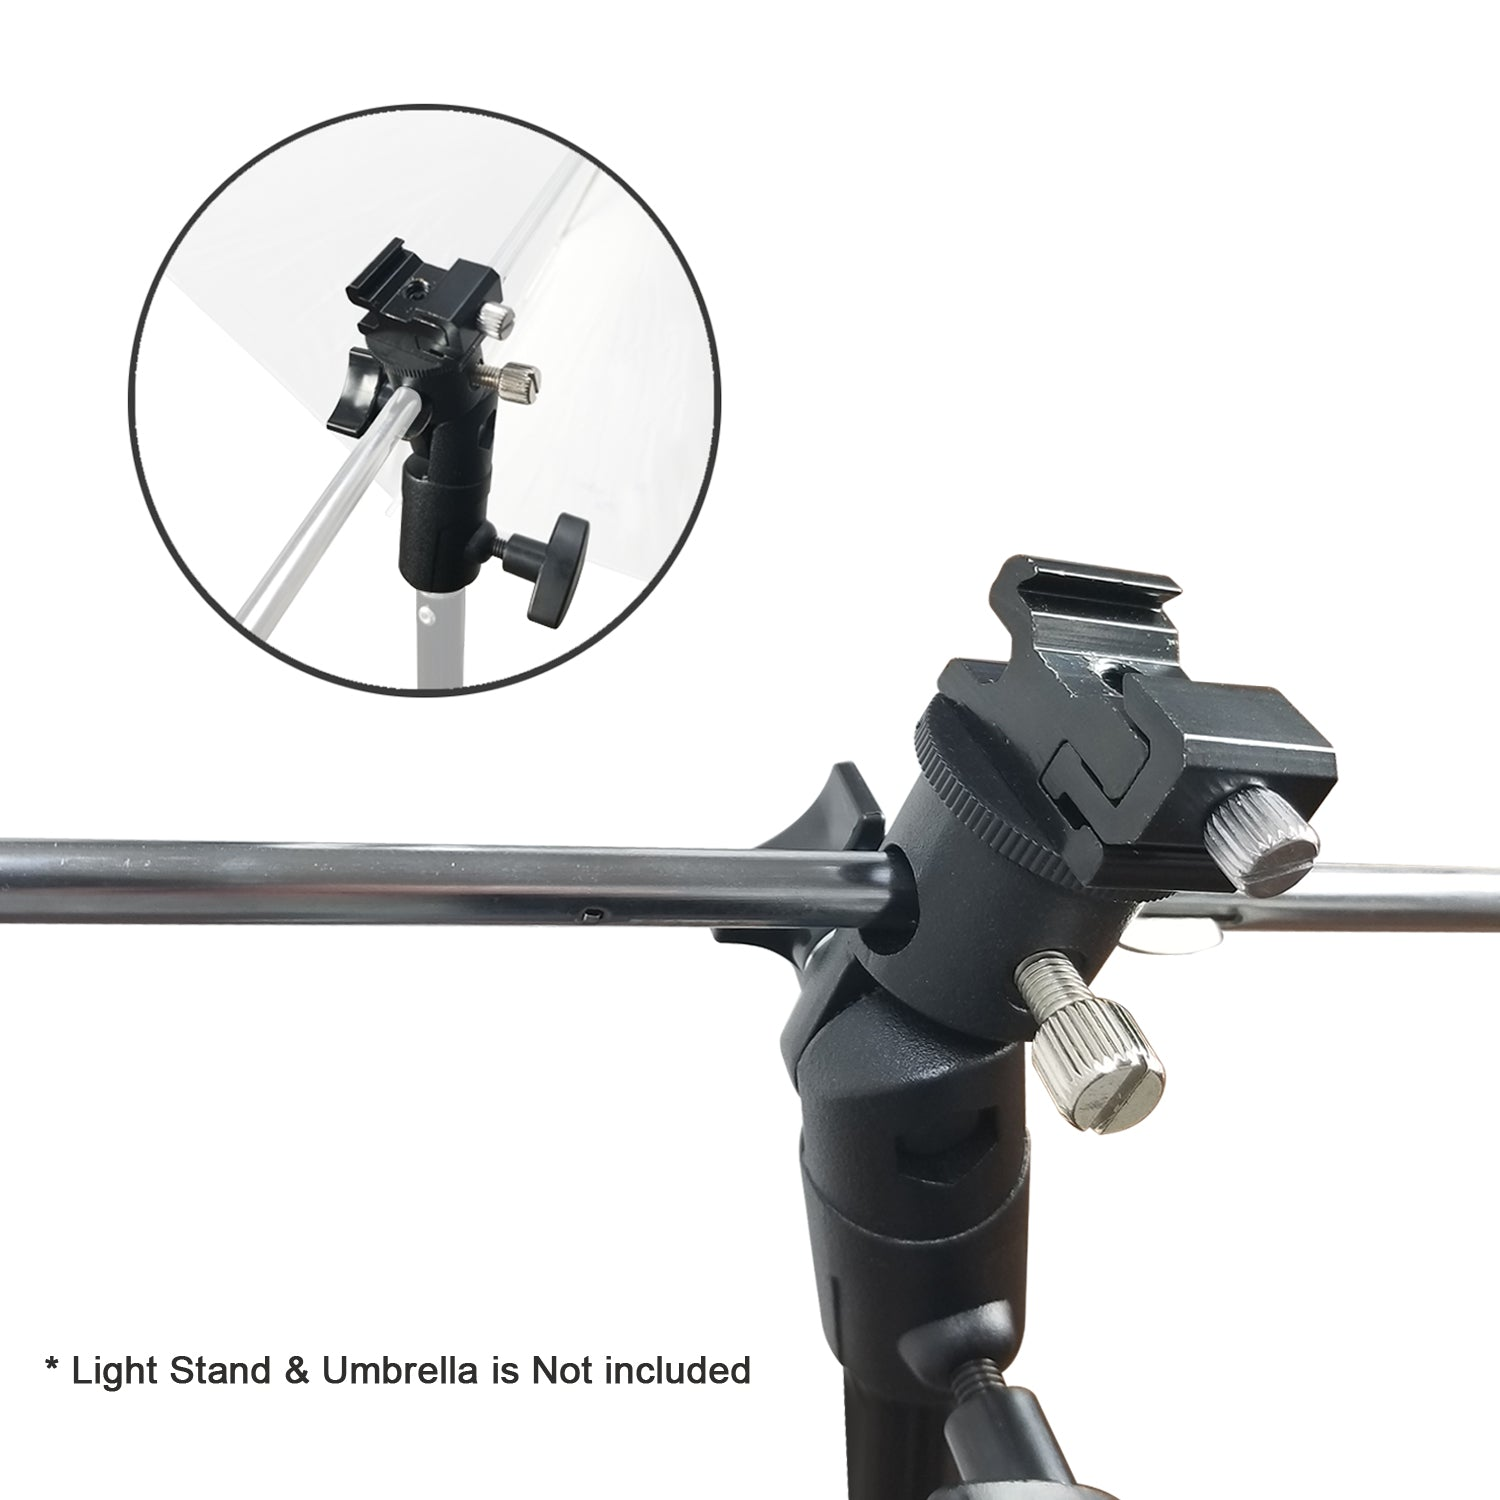 Loadstone Studio [2 PCS] Universal Standard E Type Camera Flash Bracket for Flash Speedlite, Swivel Light Stand Mounting Bracket with Umbrella Reflector Holding Slot, WMLS4692